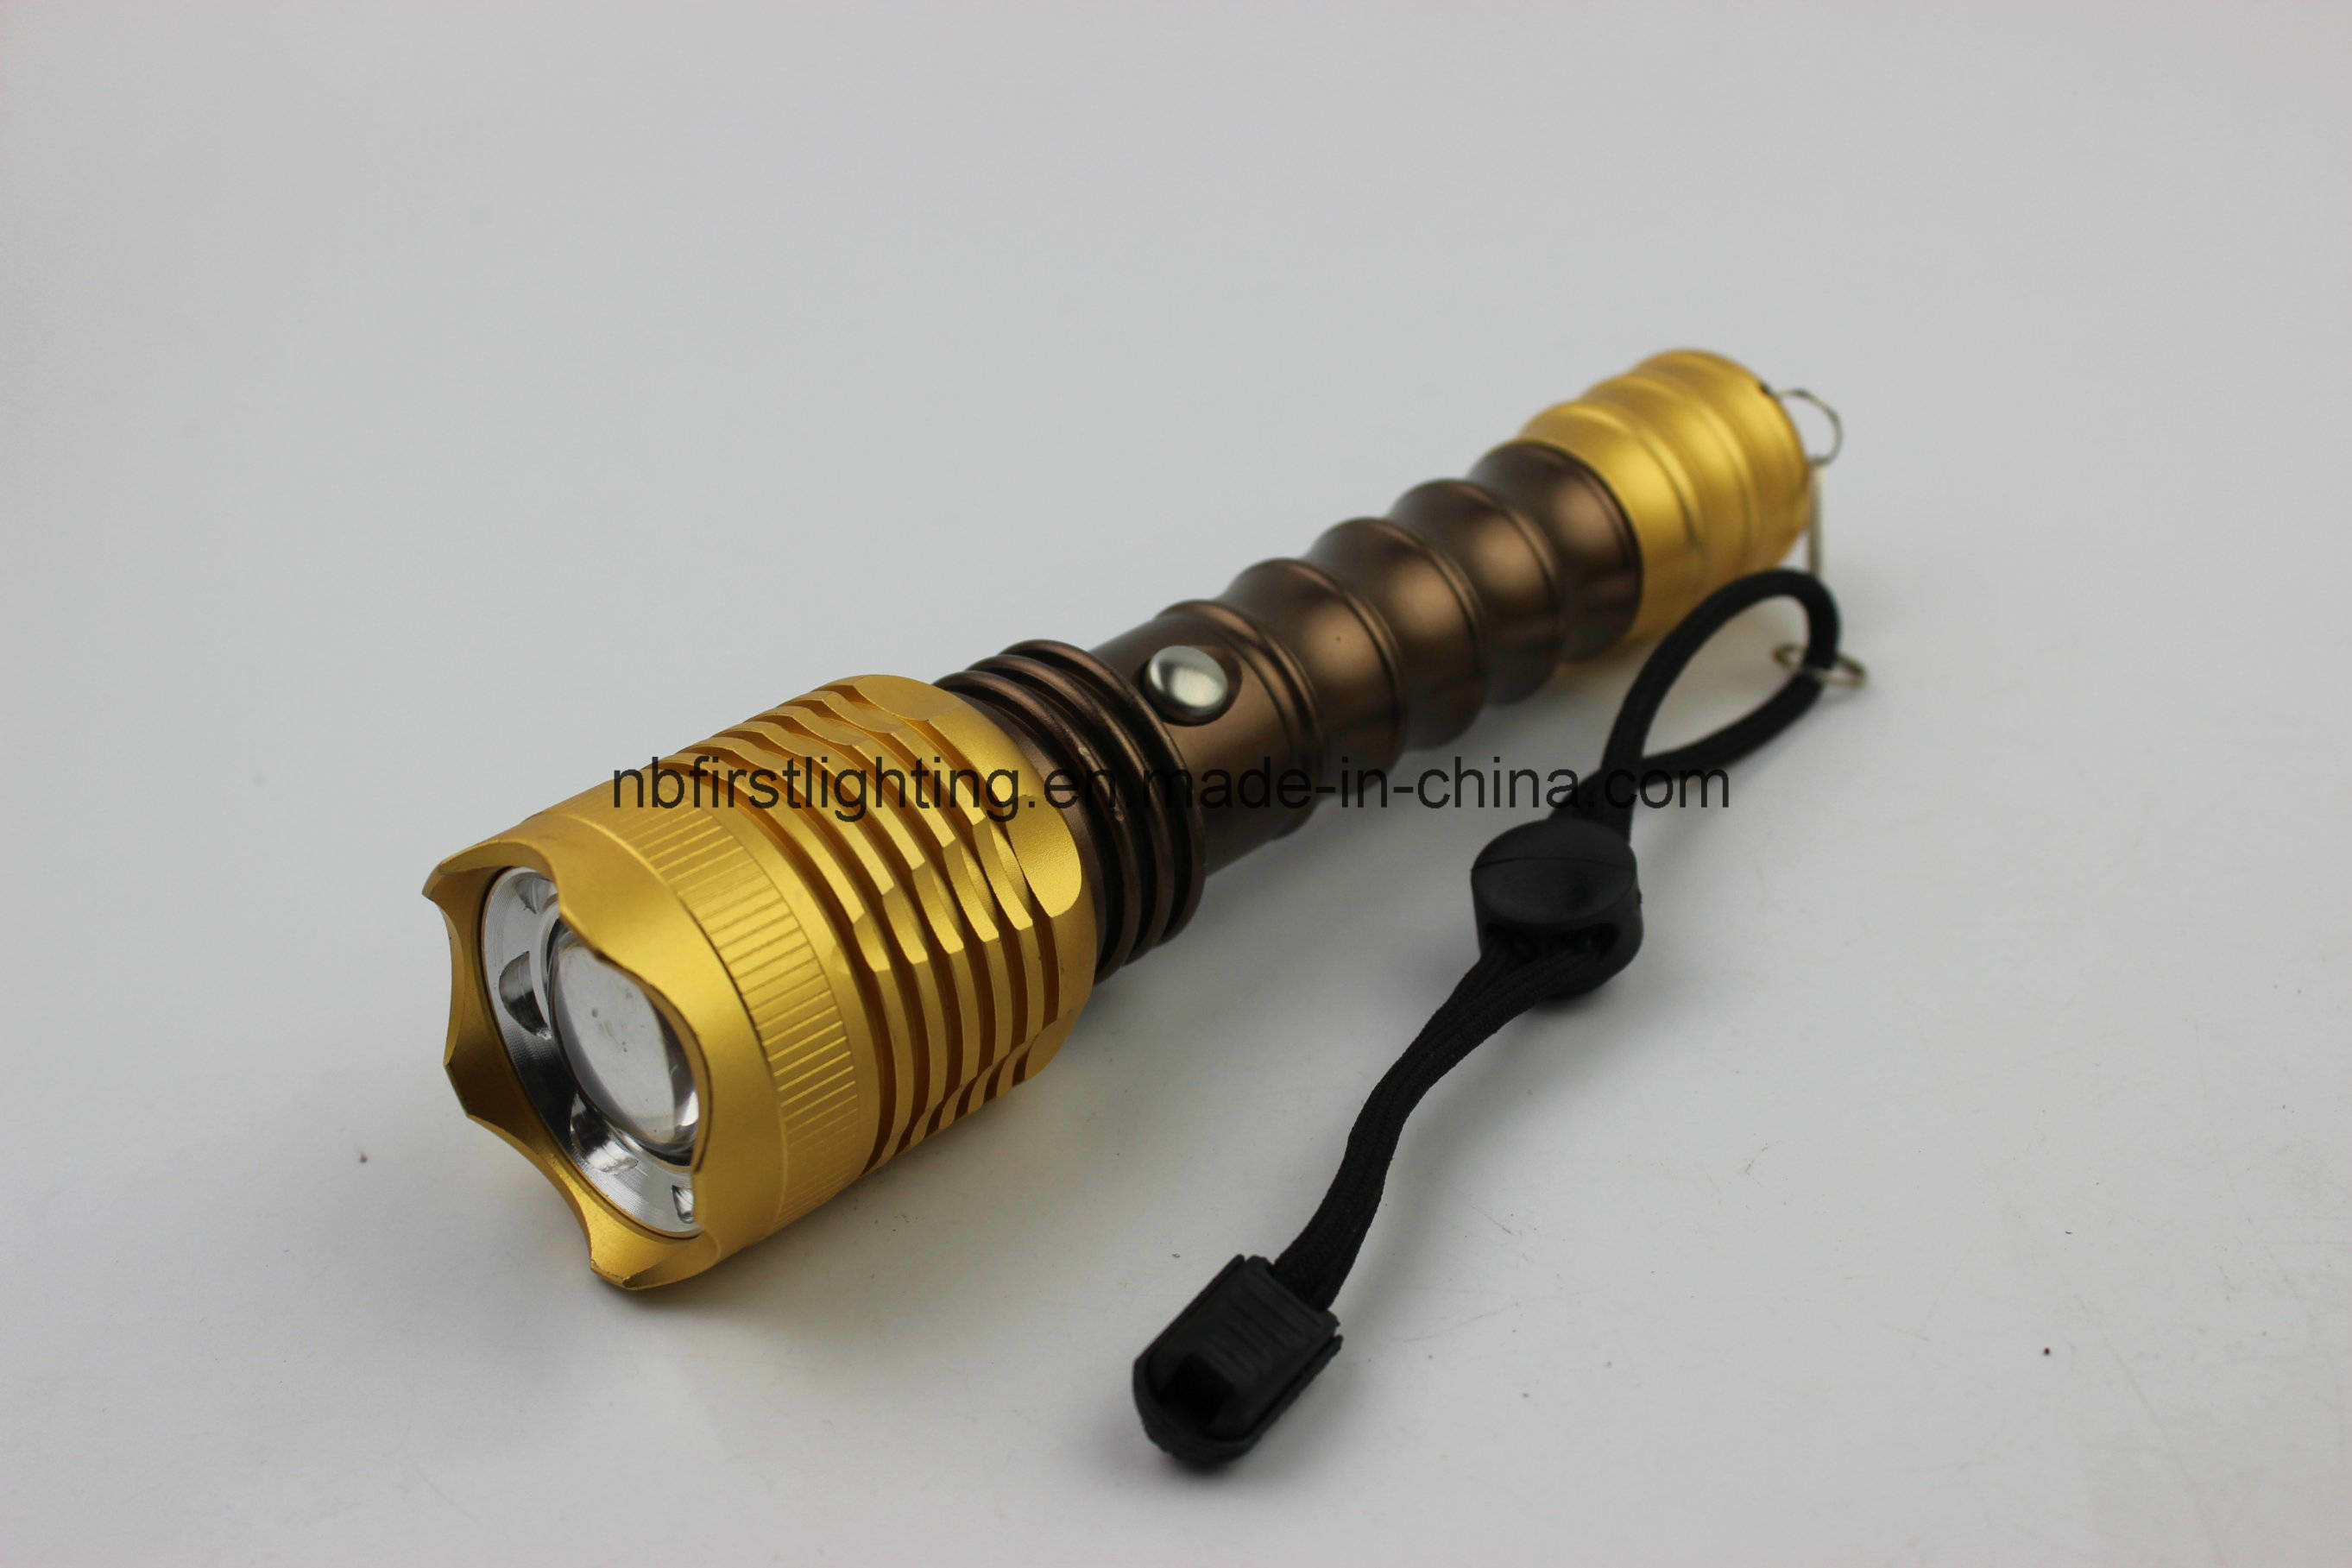 3W LED Rechargeable Flashlight